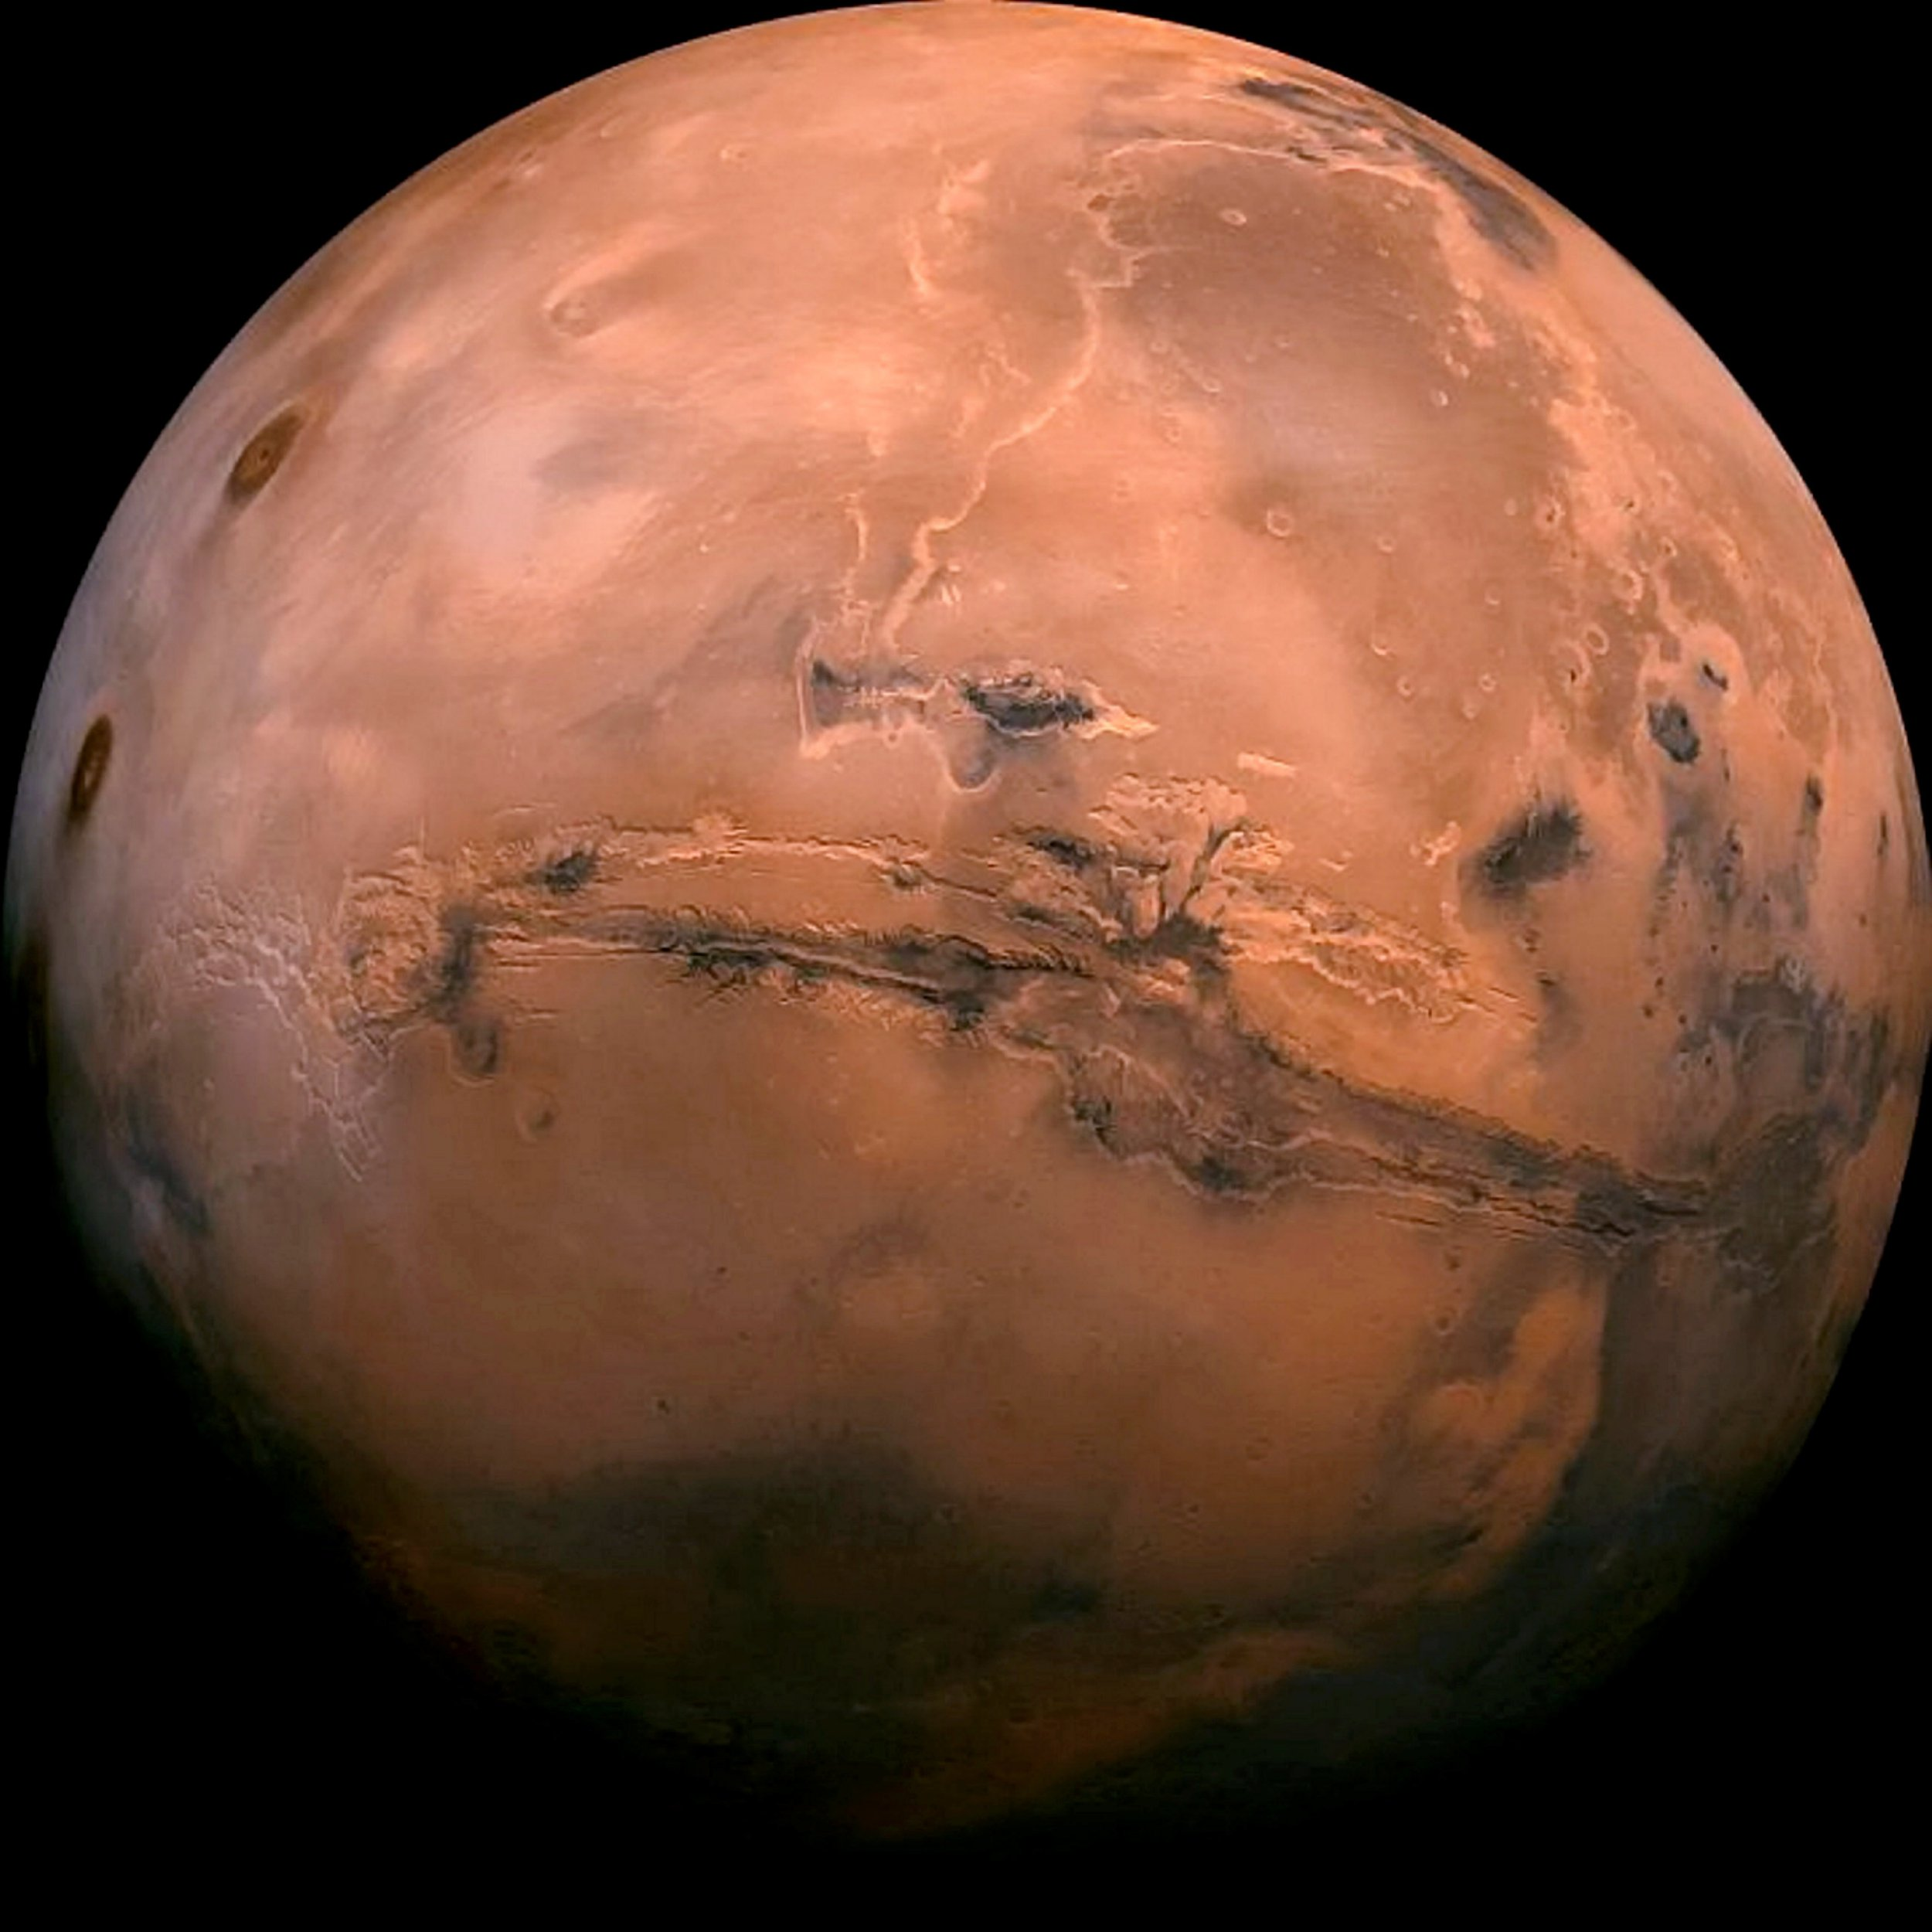 Embargoed 18:00 GMT (27-MAR-2019 14:00 ET). The planet Mars. Rivers on Mars were wider than any on Earth today and may have flowed more recently than scientists previously thought. See NATIONAL story NNMARS. Scientists have long been puzzled as to why ancient Mars had liquid water because it has an extremely thin atmosphere both today and early on in the planet's history. Mars also only received a third of the sunlight that present-day Earth does, which should not be enough heat to maintain water. Now dry, Mars' water once carved out deep riverbeds. The new study suggests the long-dead rivers could have been affected by climate-driven rains and a strong greenhouse effect. Its findings suggest it rained on Mars even as the planet was losing atmosphere and drying out one billion years ago. The team at the University of Chicago concludes Mars' rivers were about two times wider than those on Earth and there is evidence of intense surface run-off between 3.6 and one billion years ago.